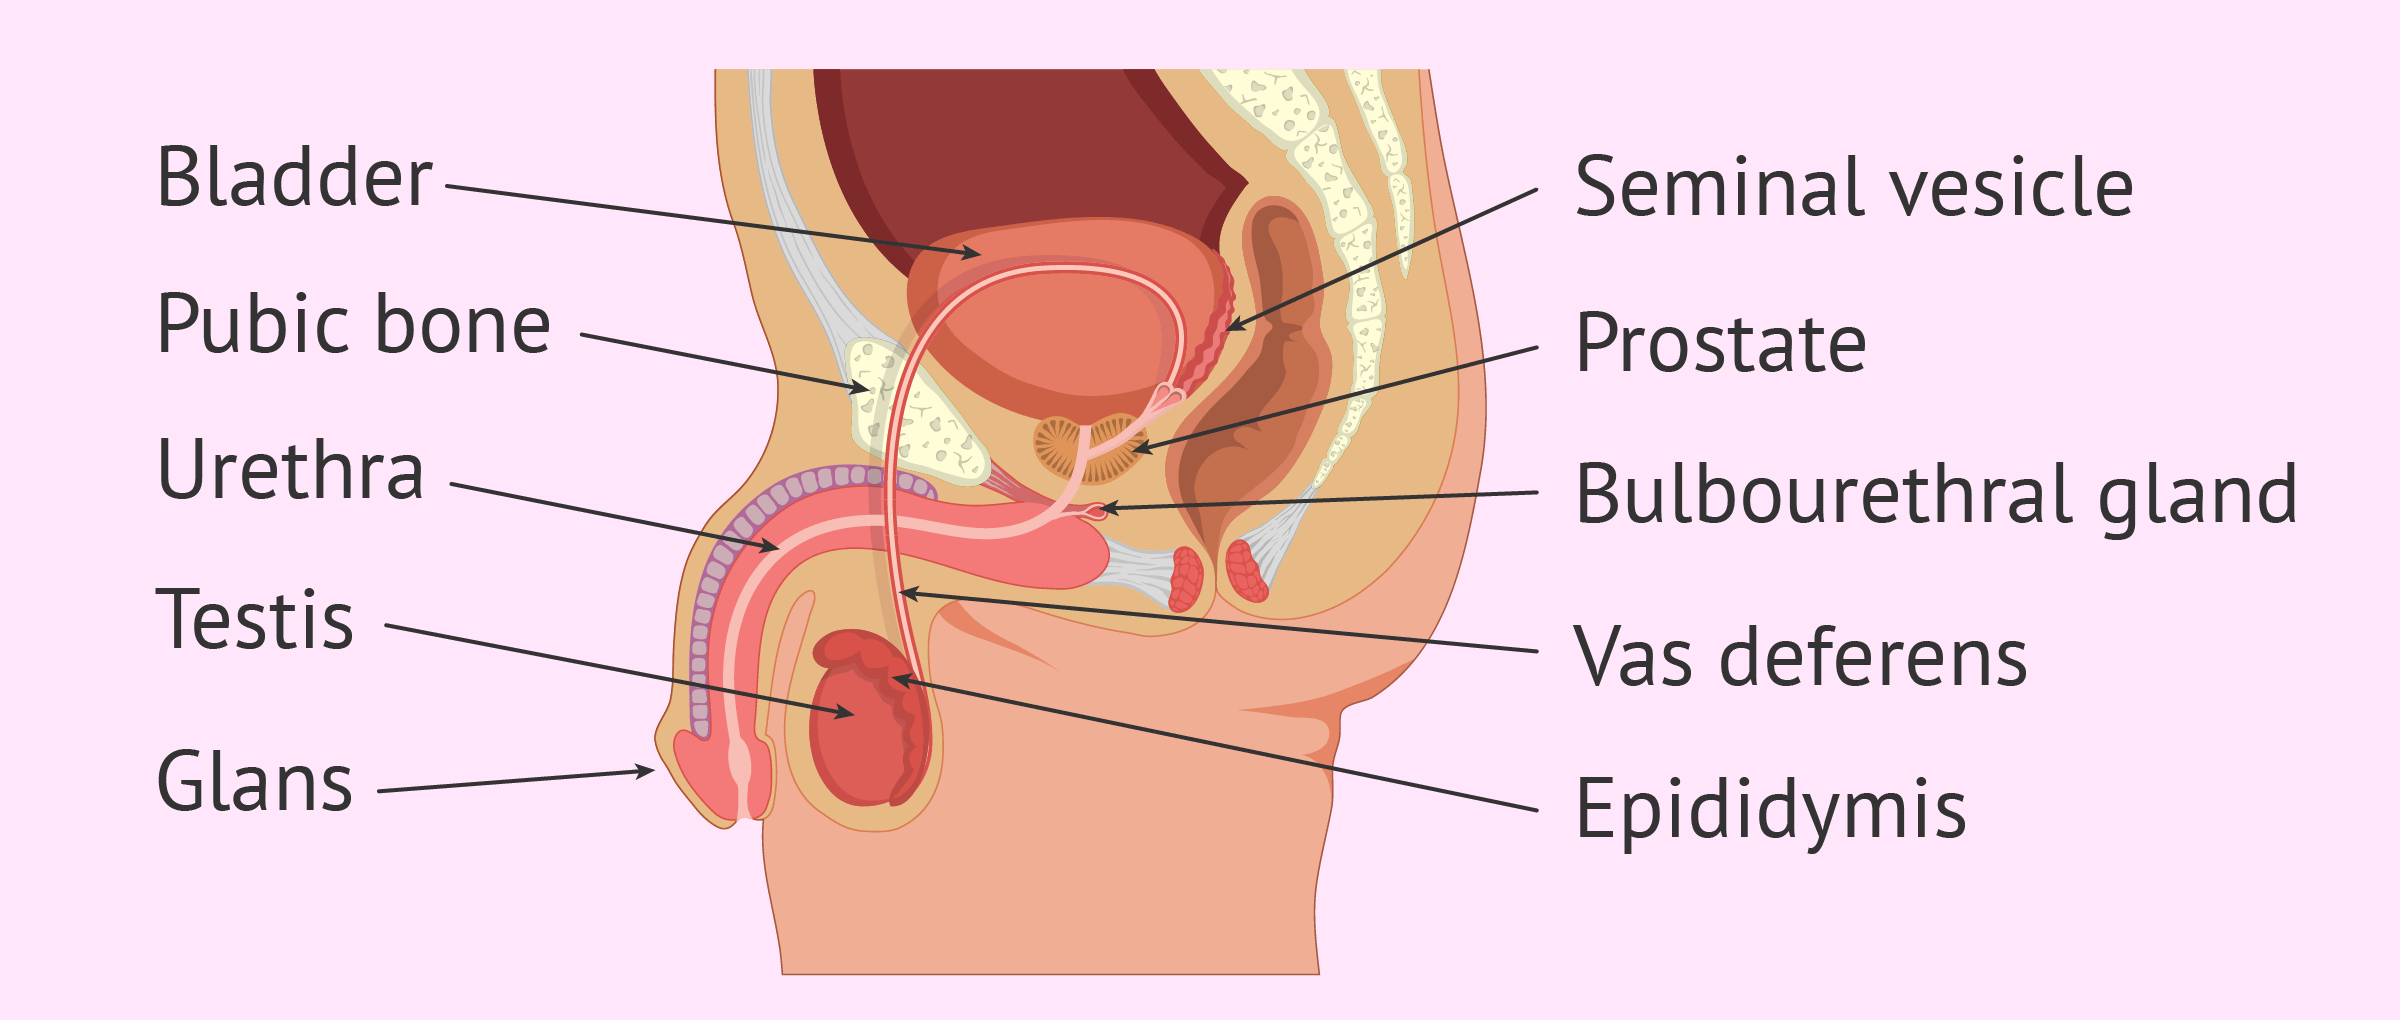 Male Fertility Parts Functions Of The Male Reproductive System